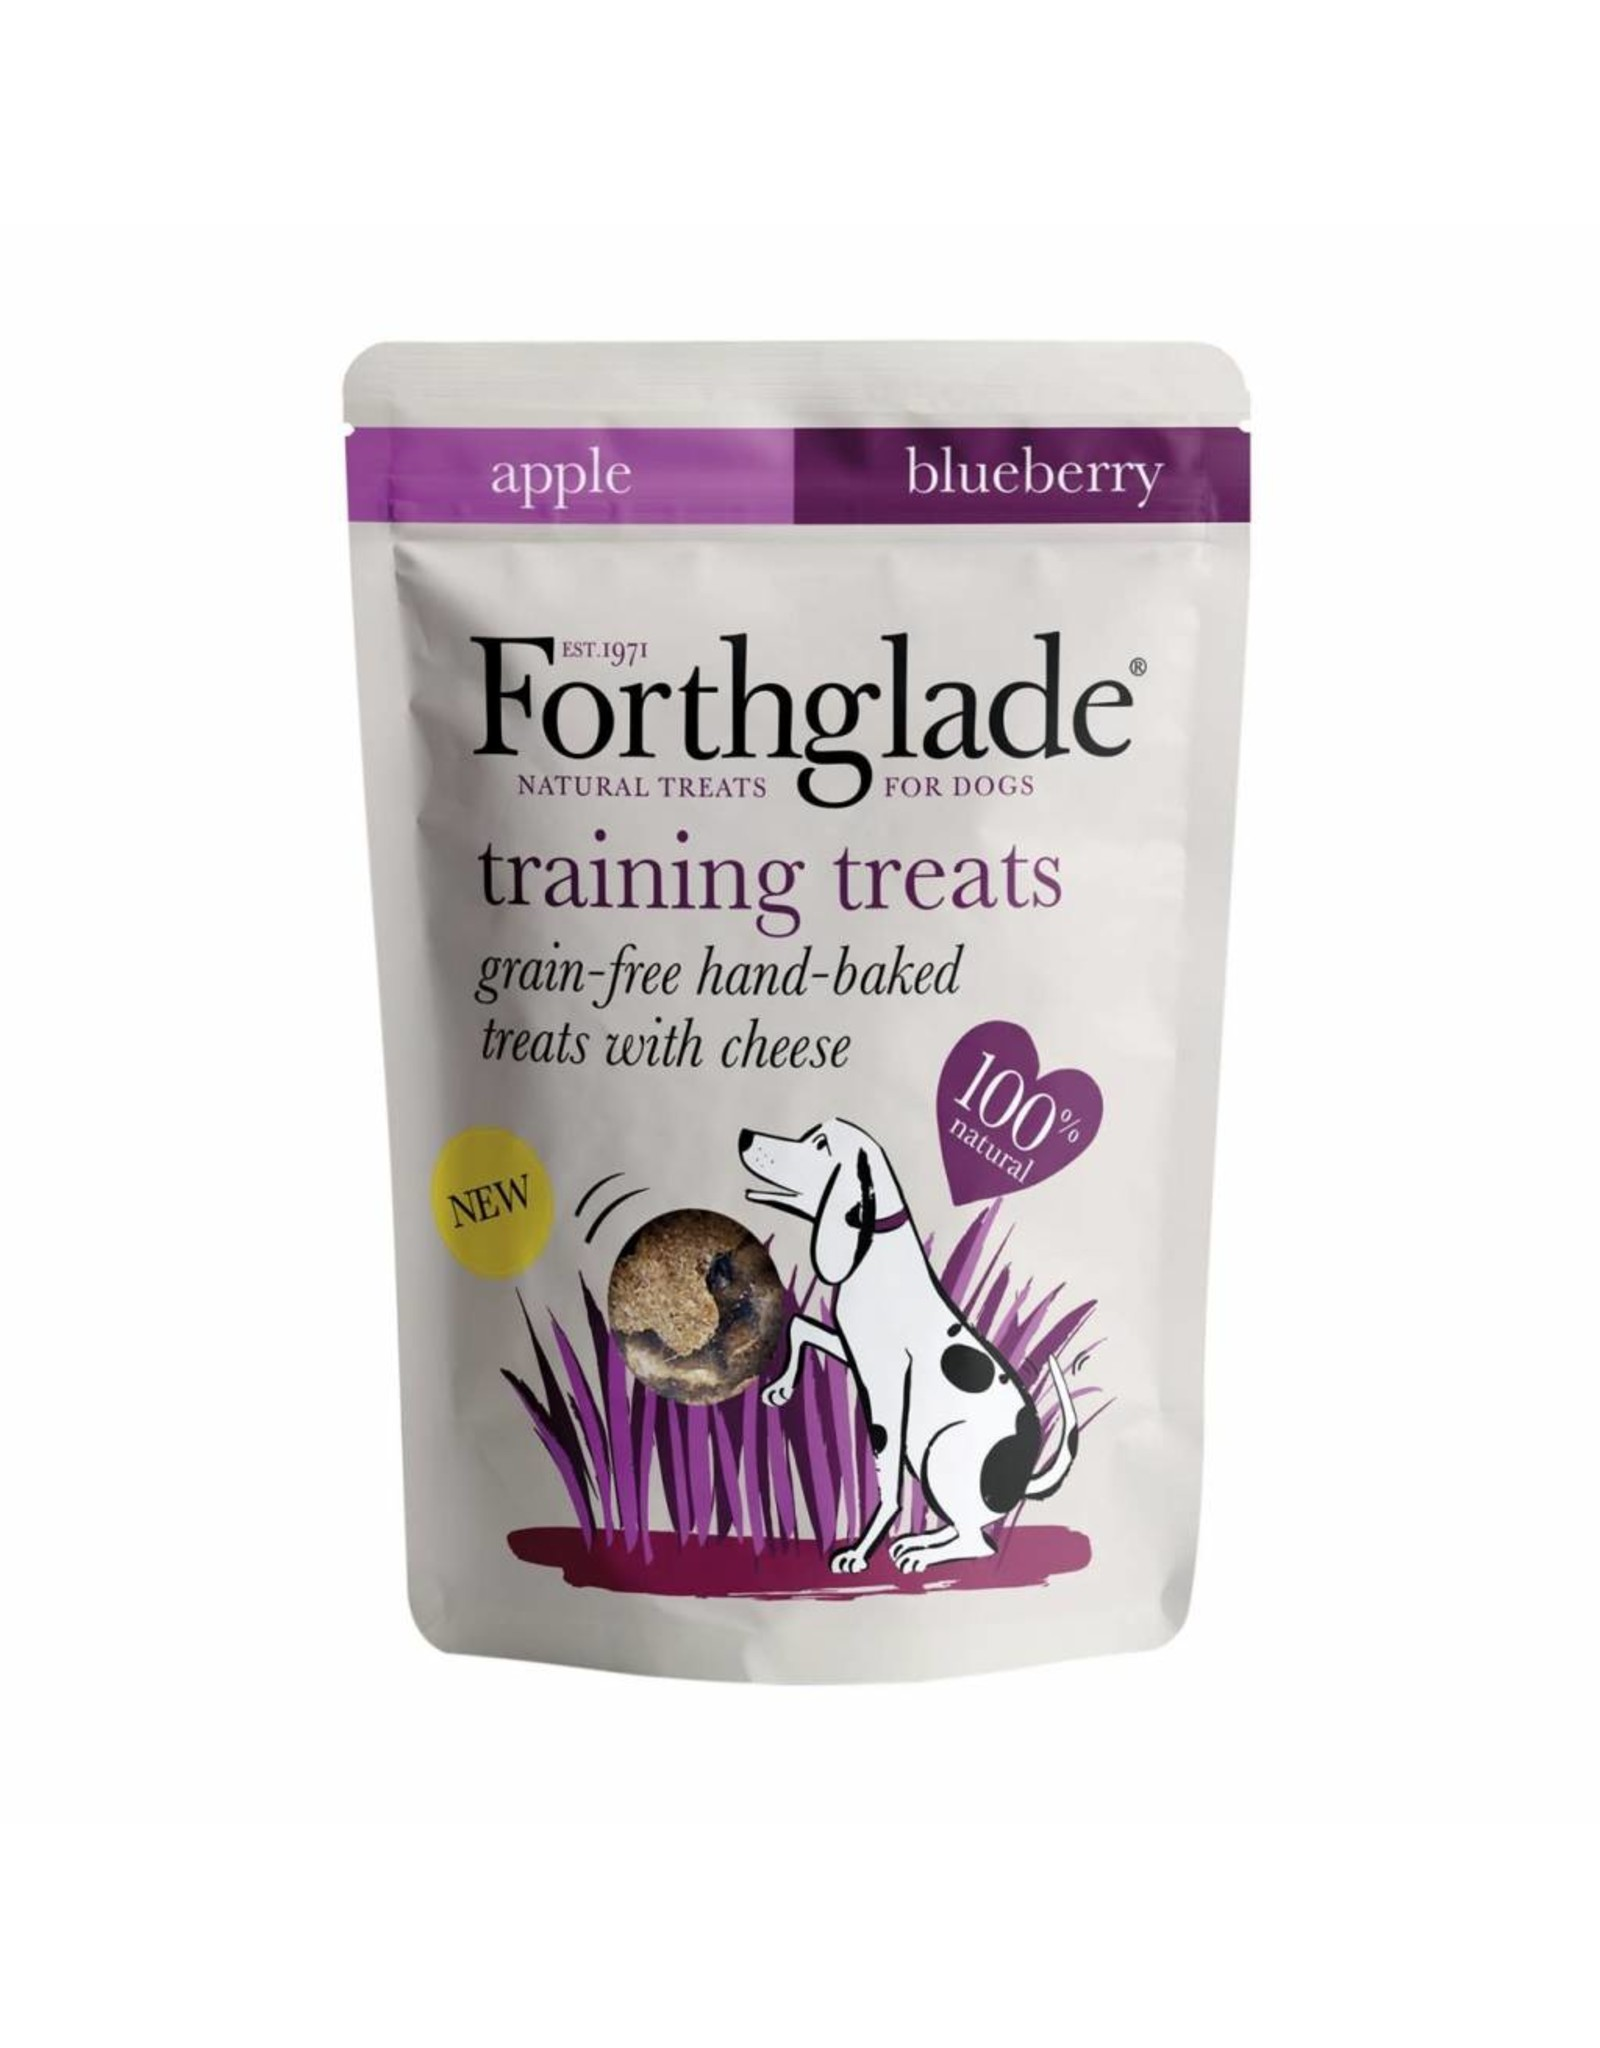 Forthglade Training Treats Grain Free Hand Baked Dog Treats with Cheese, 150g